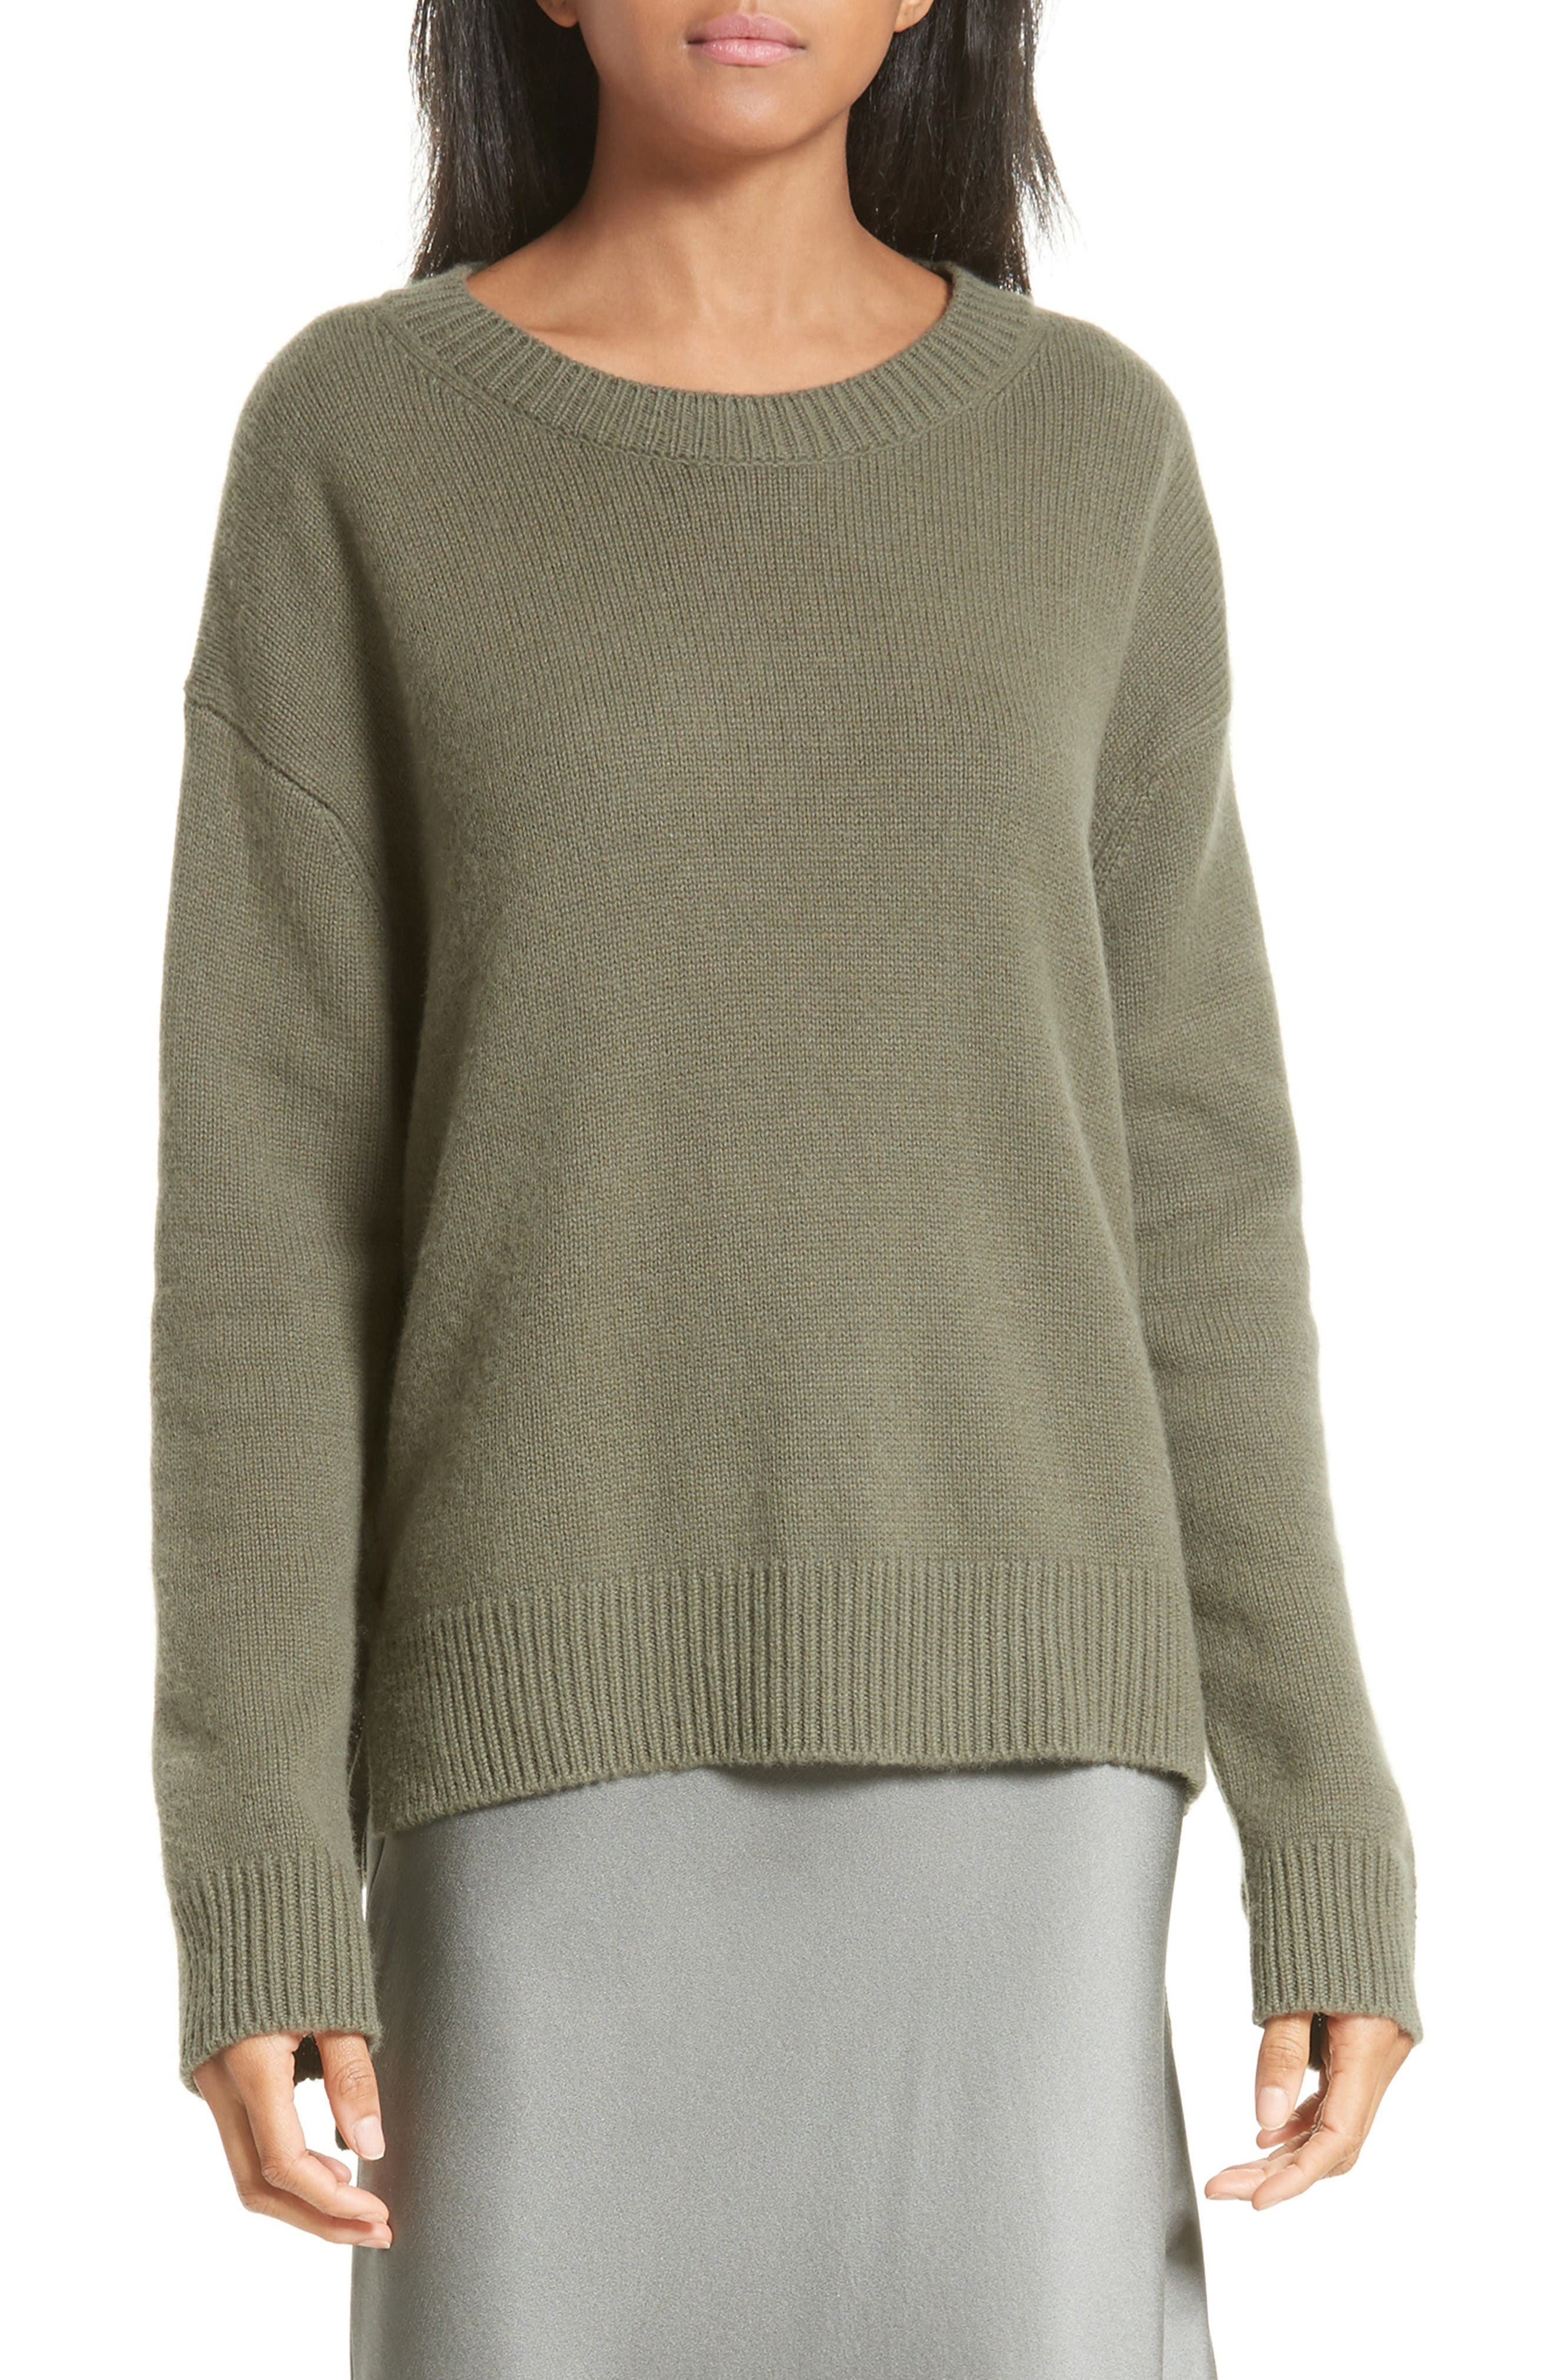 Vince Lace Up Cashmere Pullover